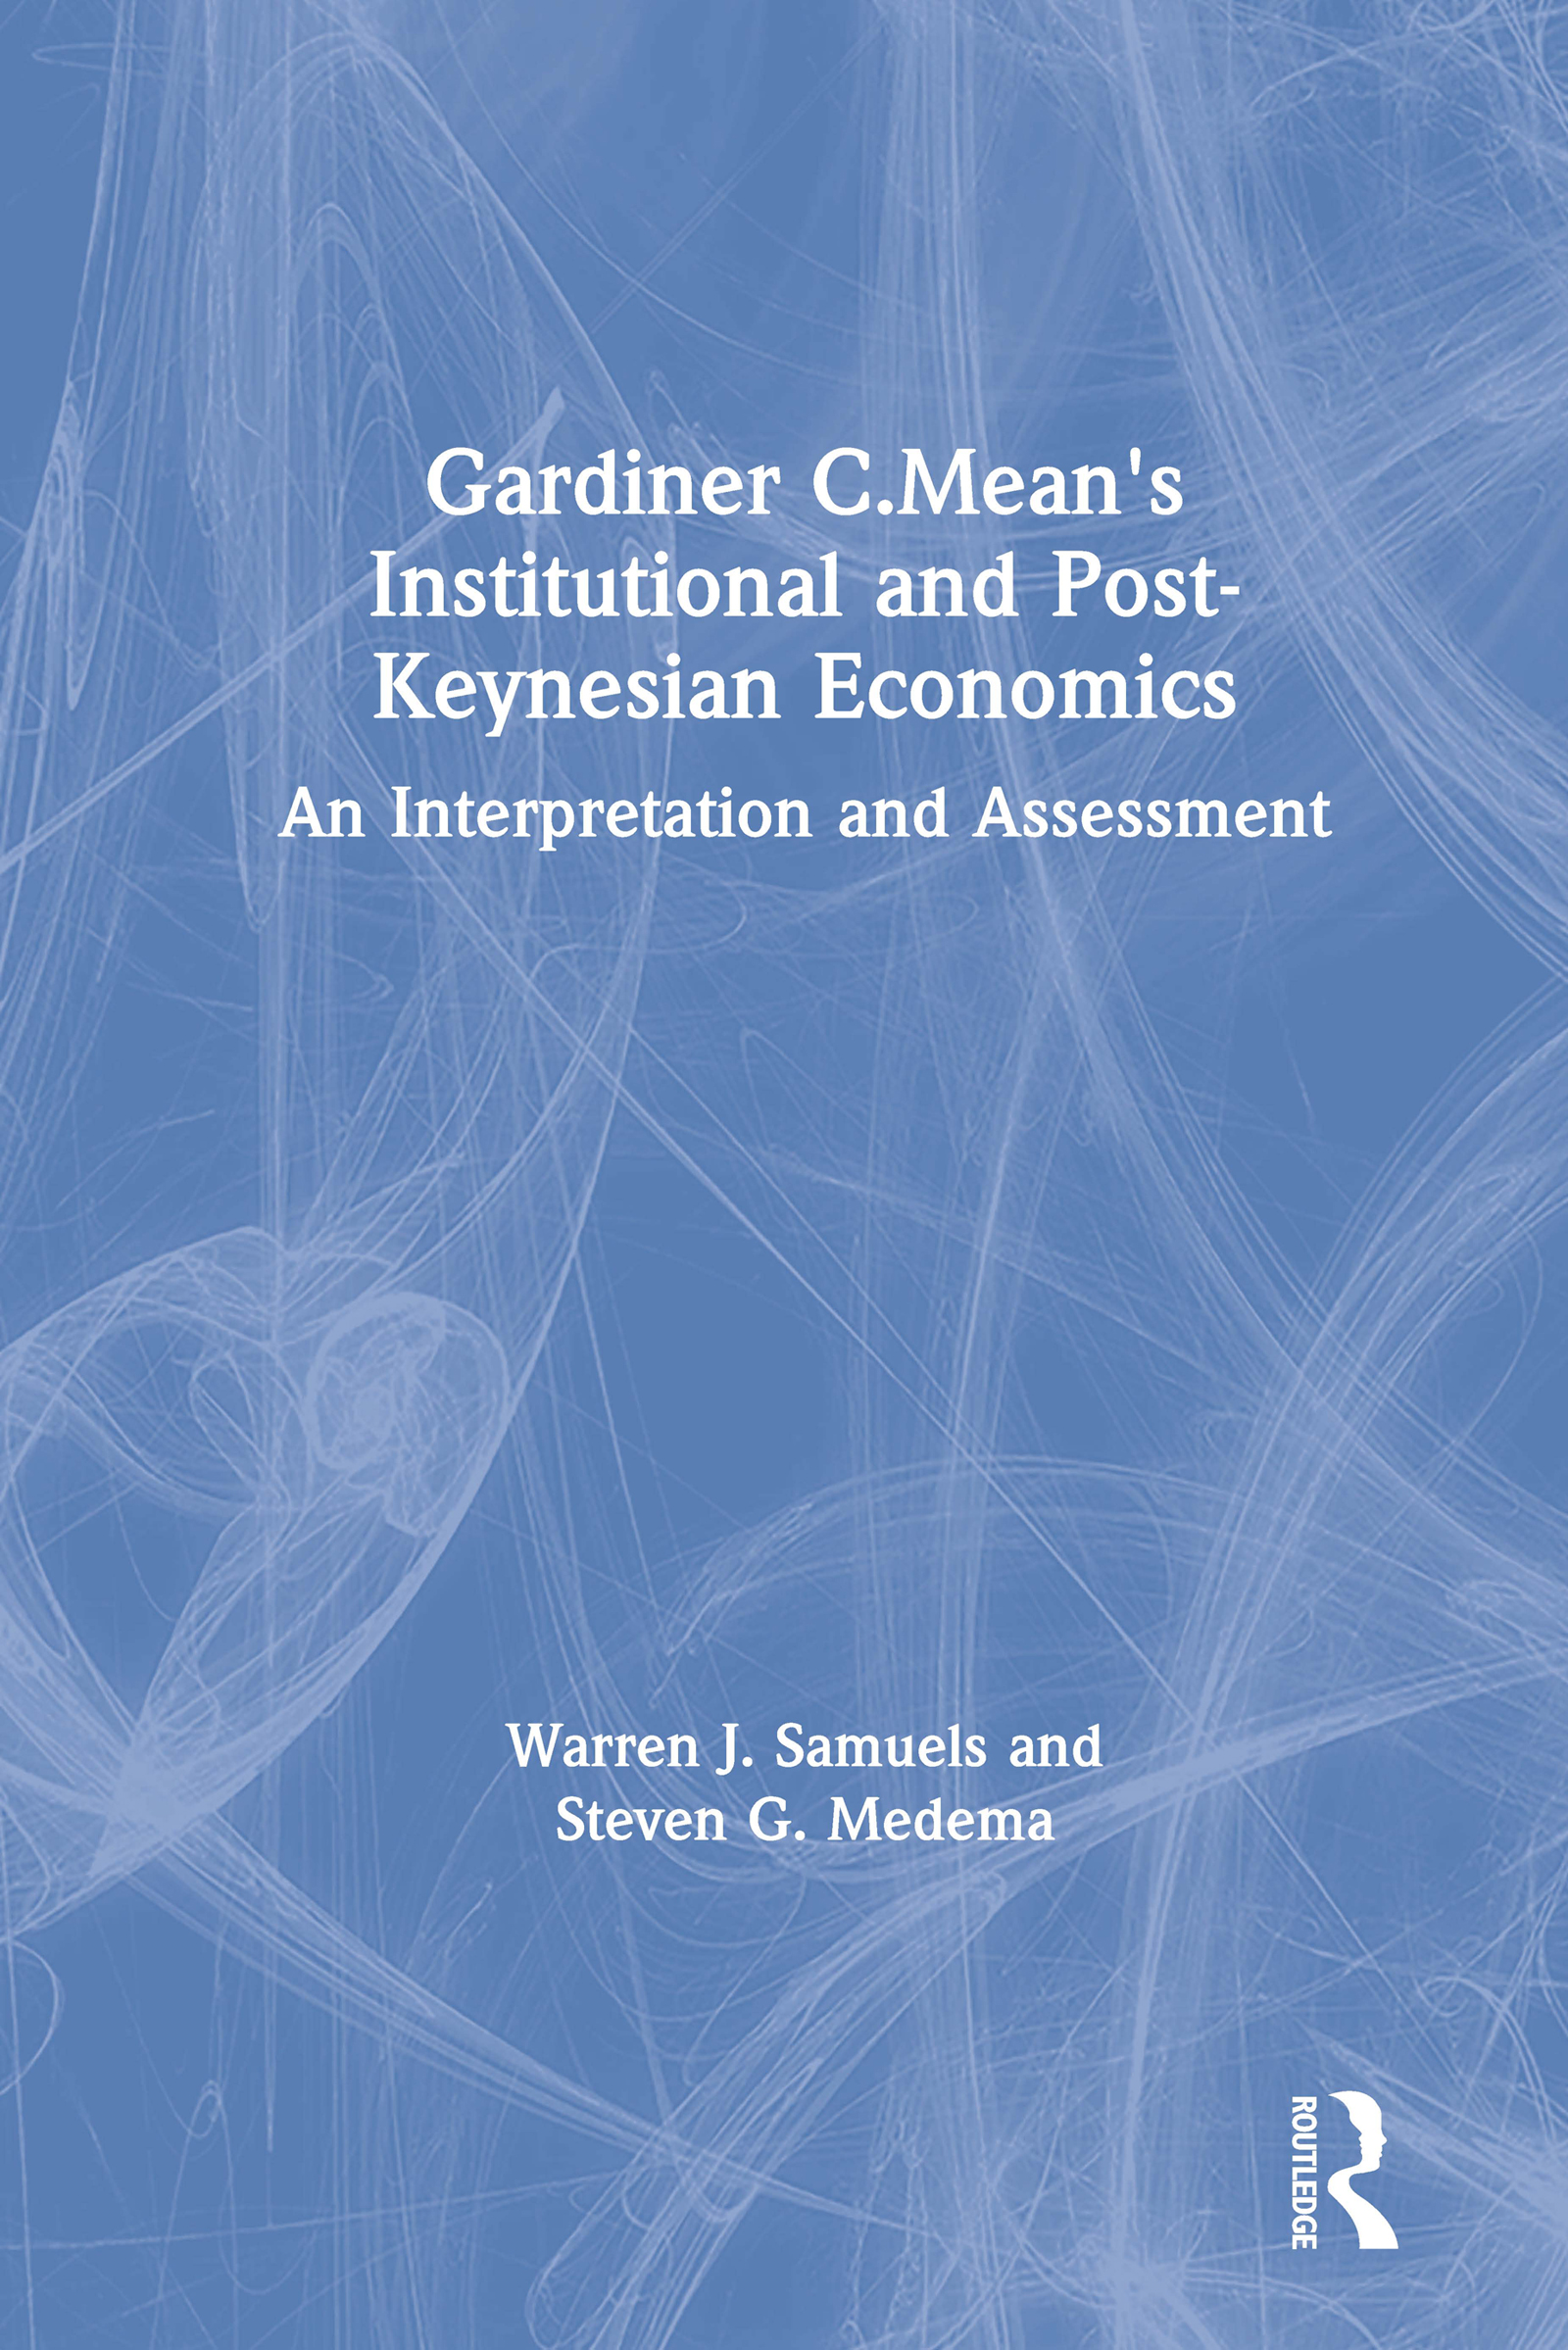 Gardiner C.Mean's Institutional and Post-Keynesian Economics: An Interpretation and Assessment book cover